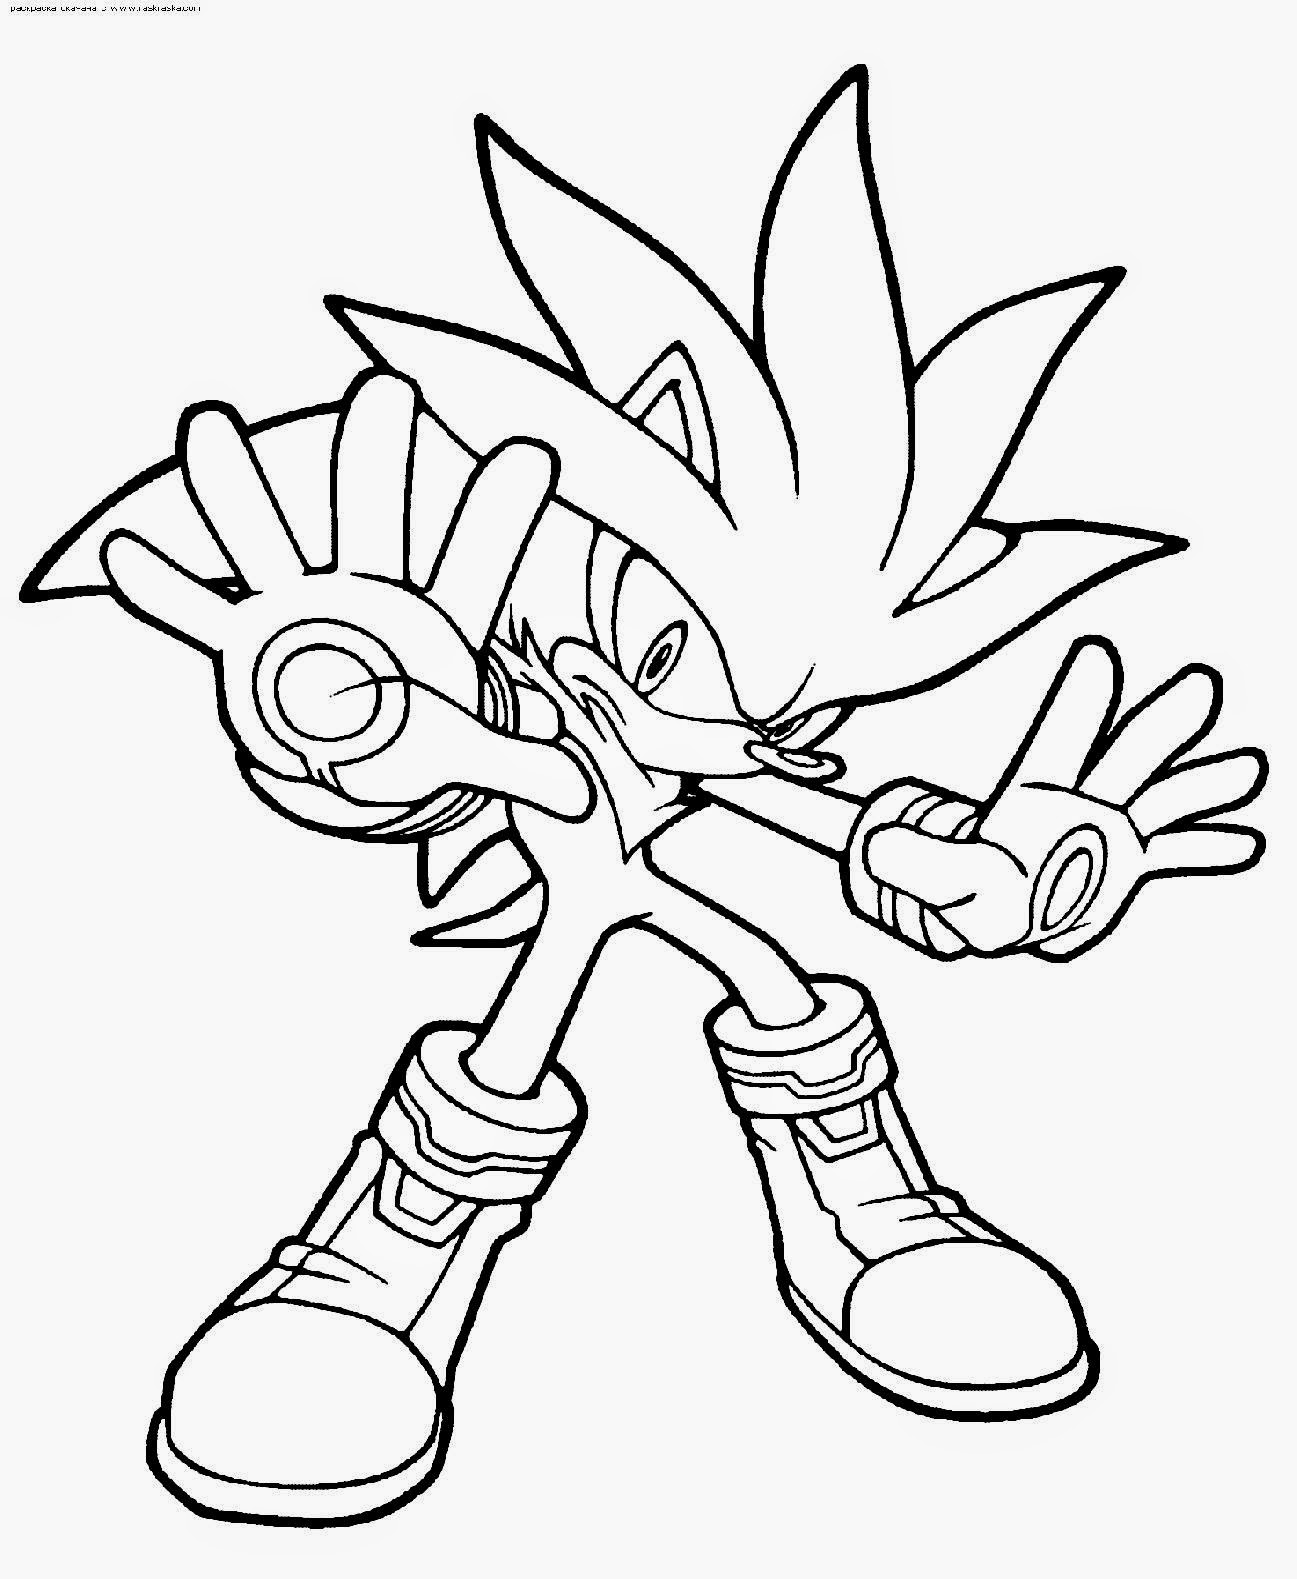 Sonic coloring sheets free coloring sheet for Free sonic the hedgehog coloring pages